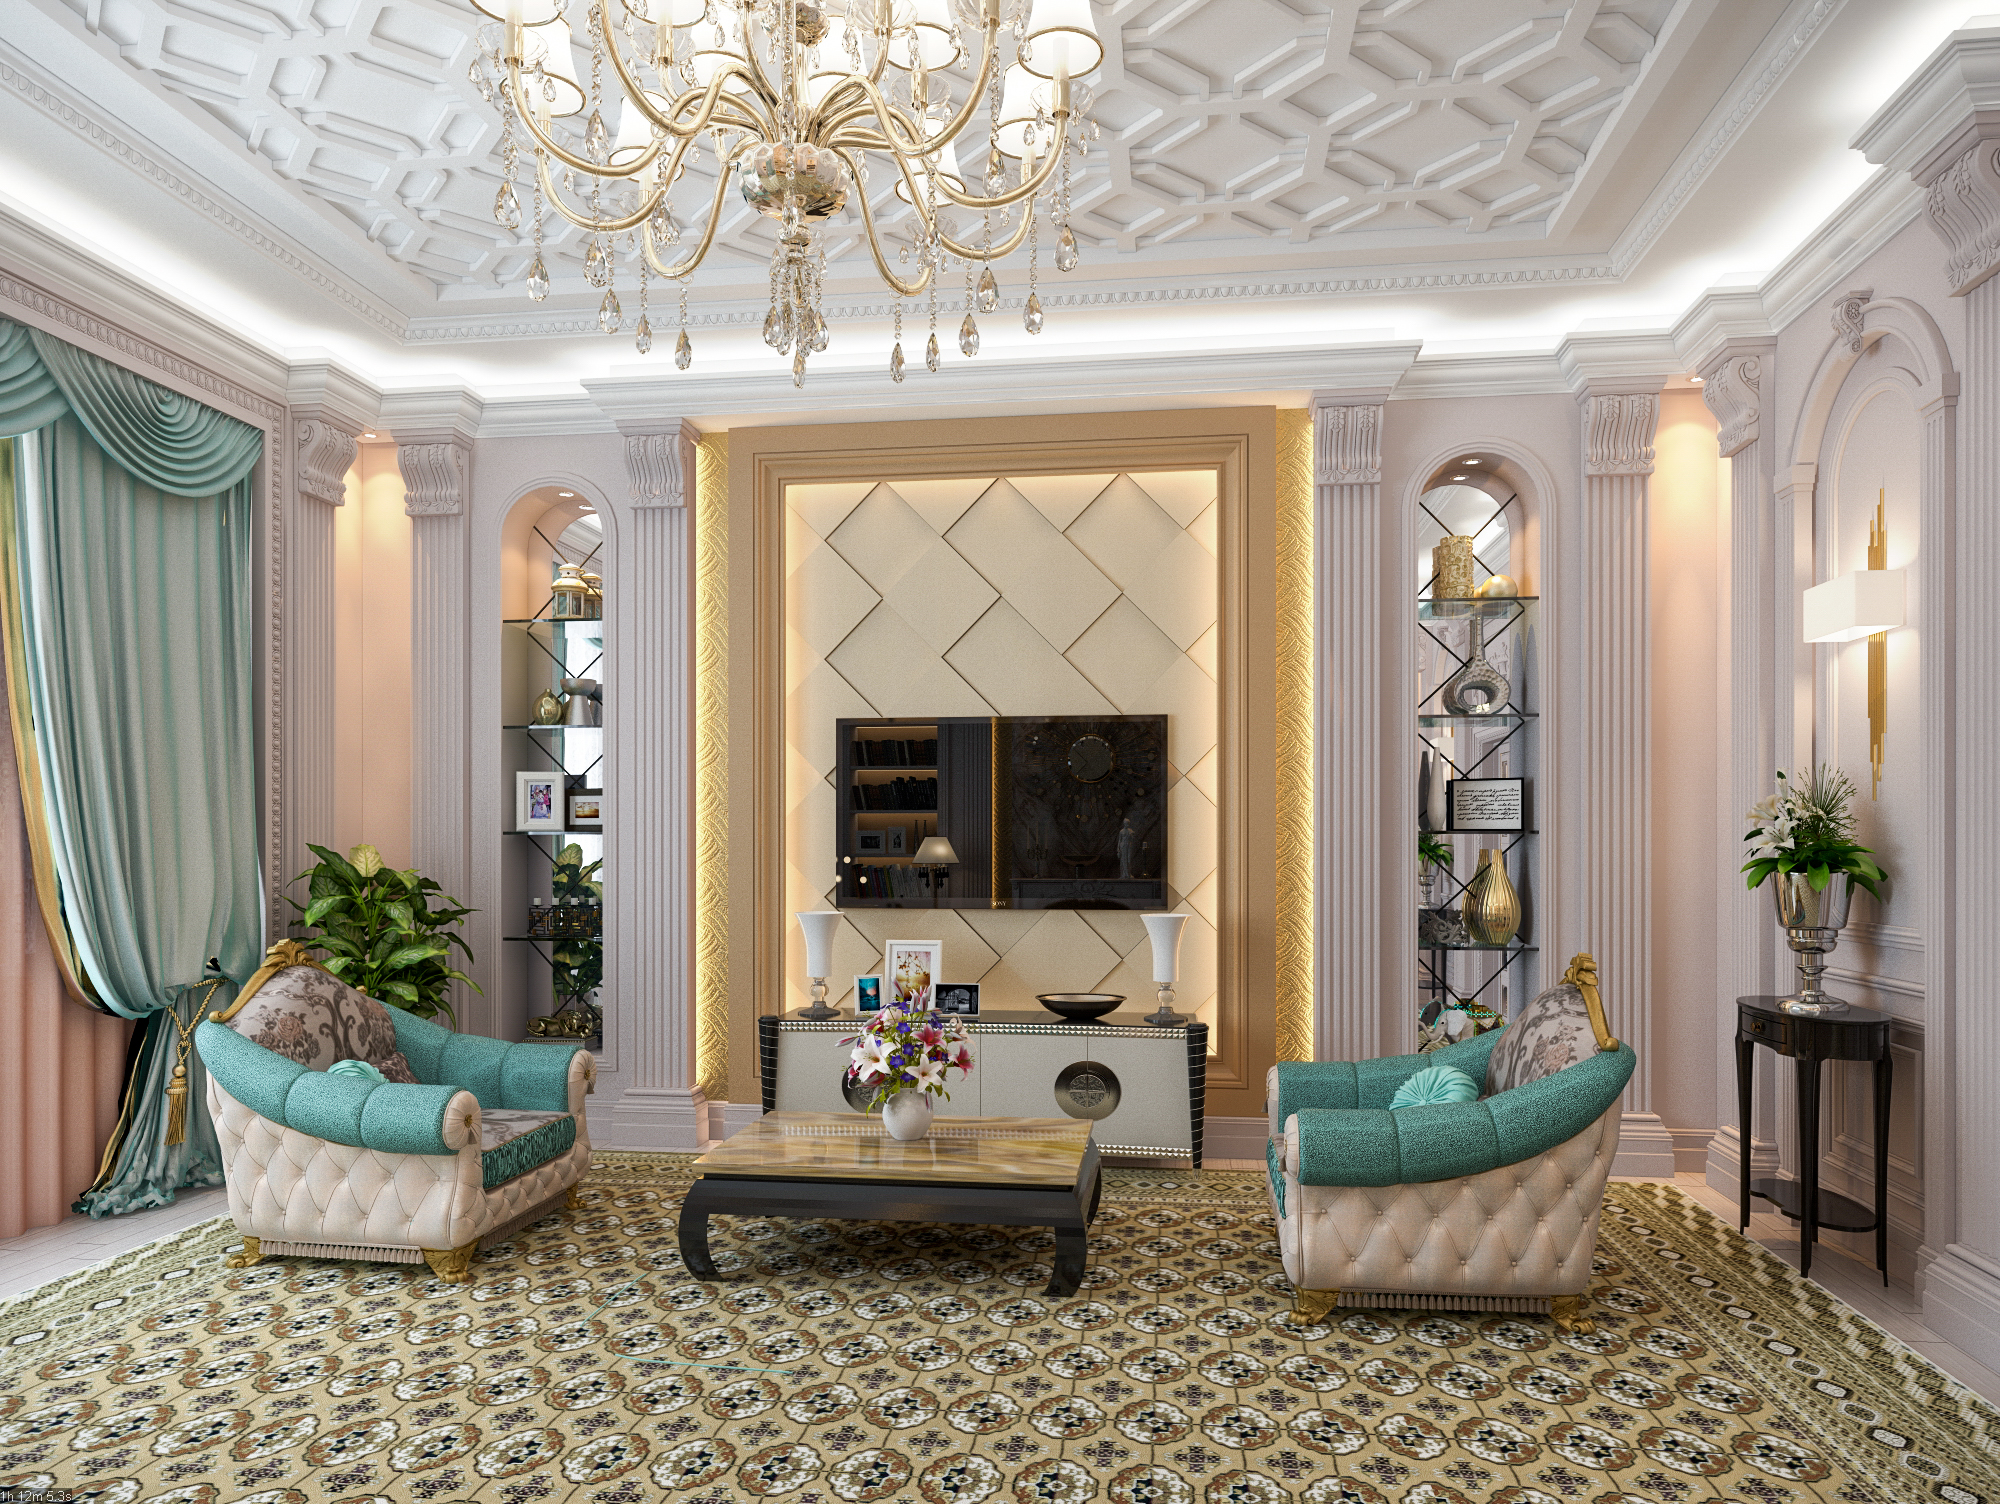 Arabic Design, Interior Design, Qatar Design, Luxuries Design,